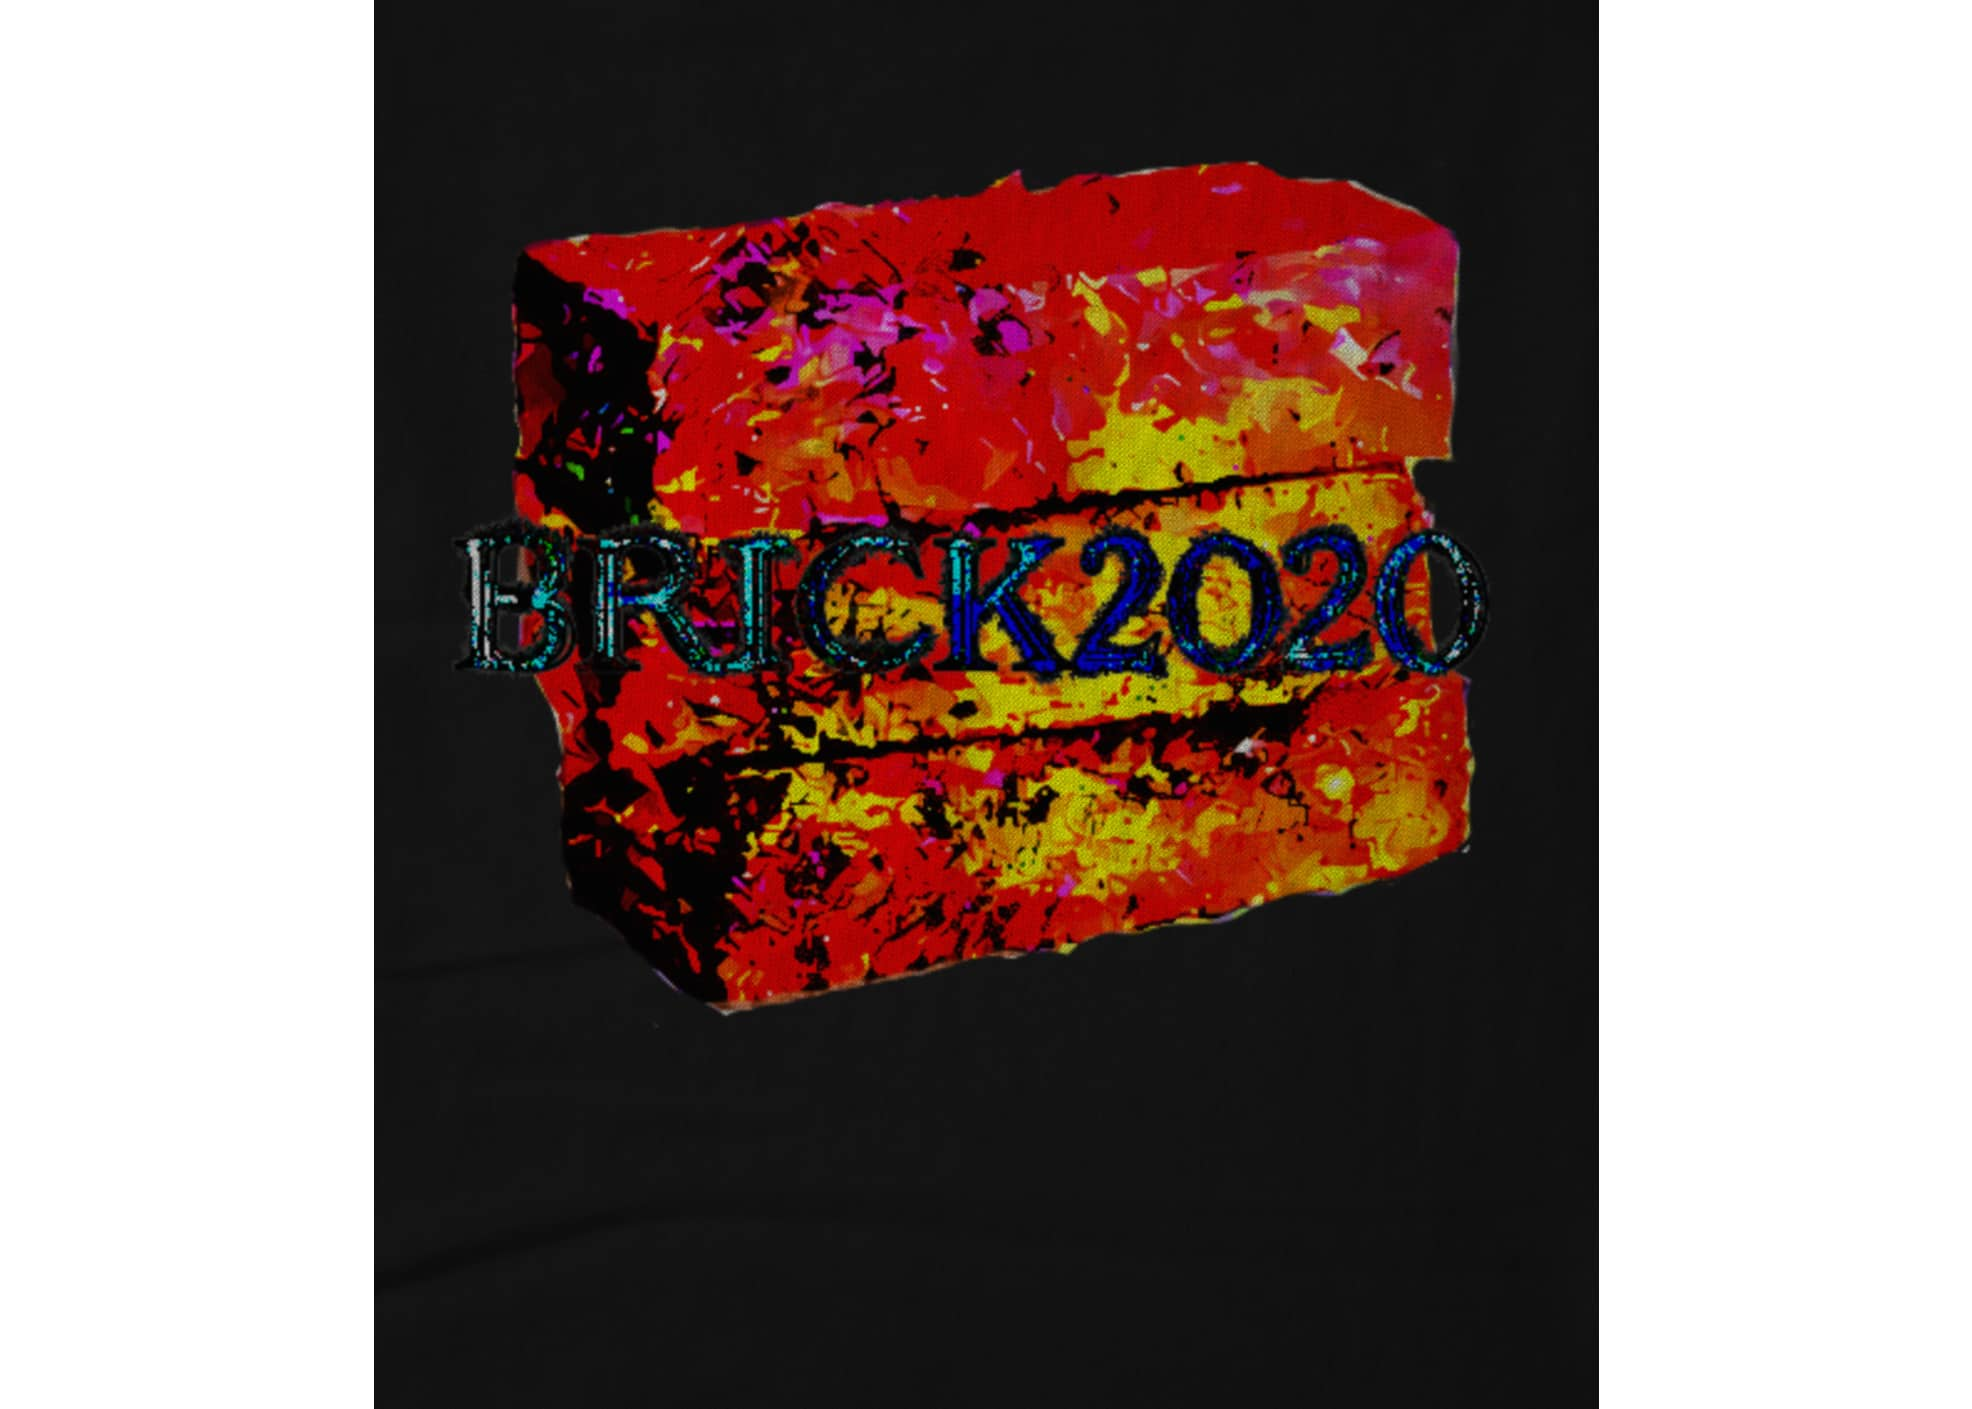 Collections of dead souls brick2020 1598688592